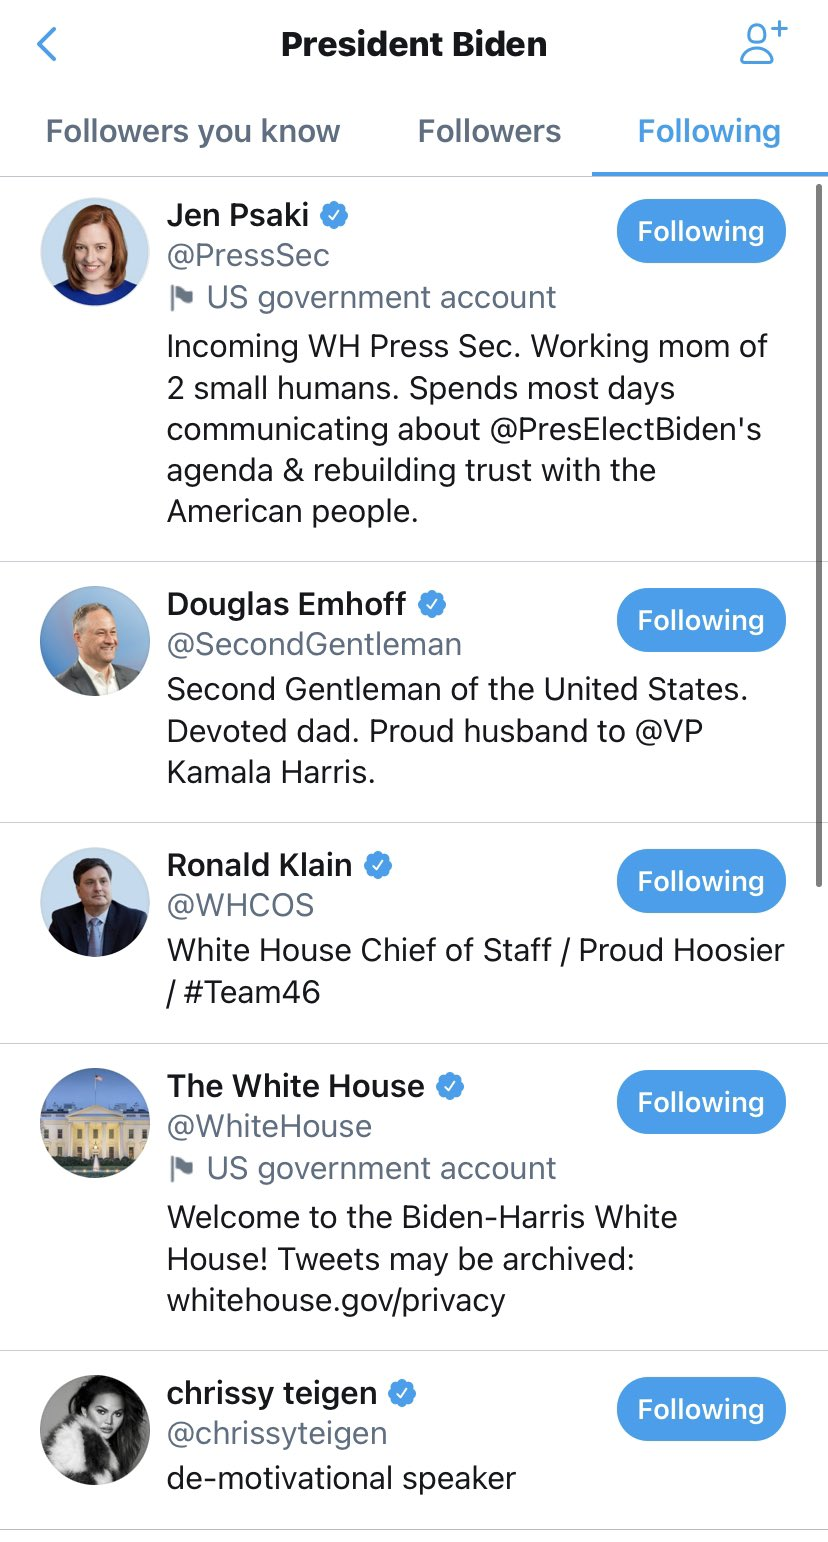 The Only Celeb That @POTUS Follows On Twitter (And Why)